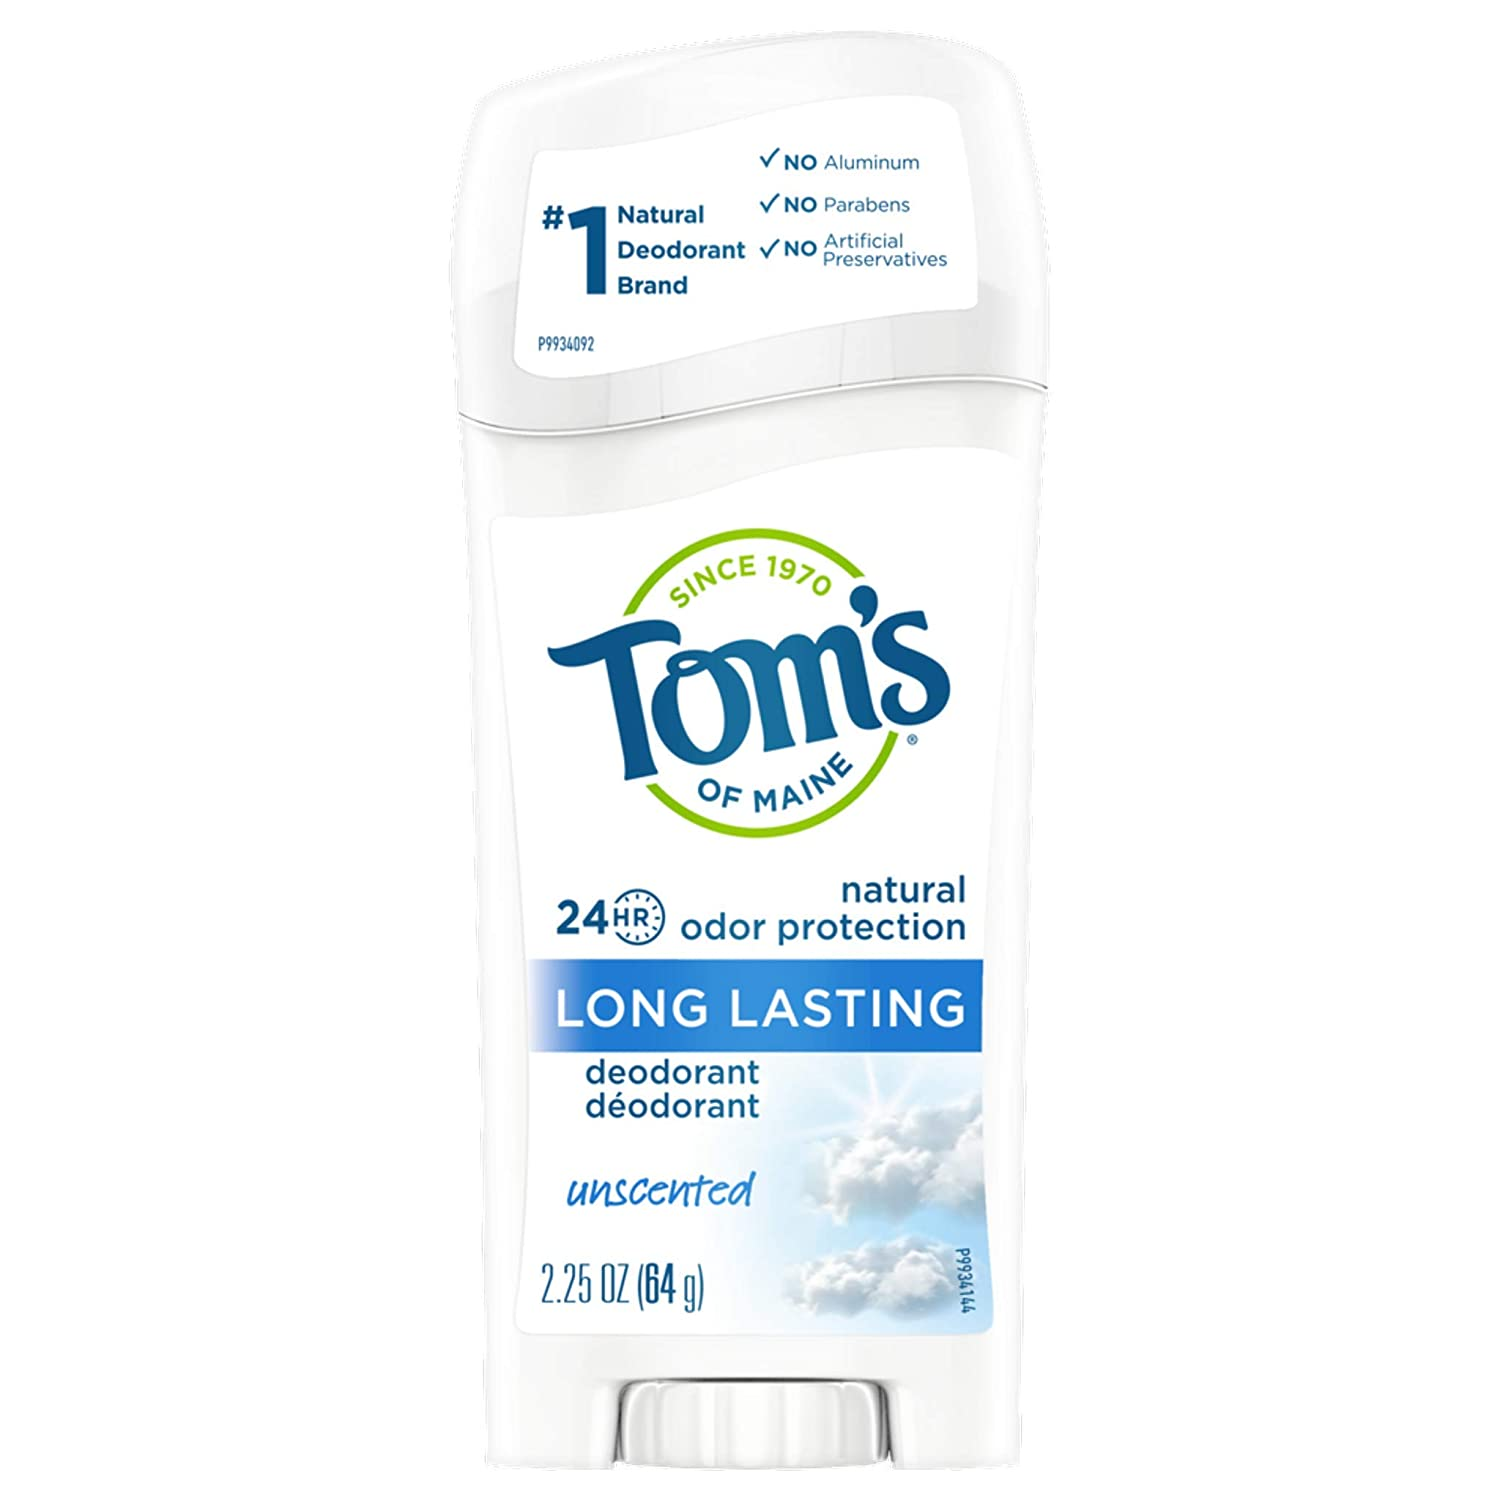 1 year warranty Tom's of Maine Long-Lasting Natural Deodorant In stock Aluminum-Free for